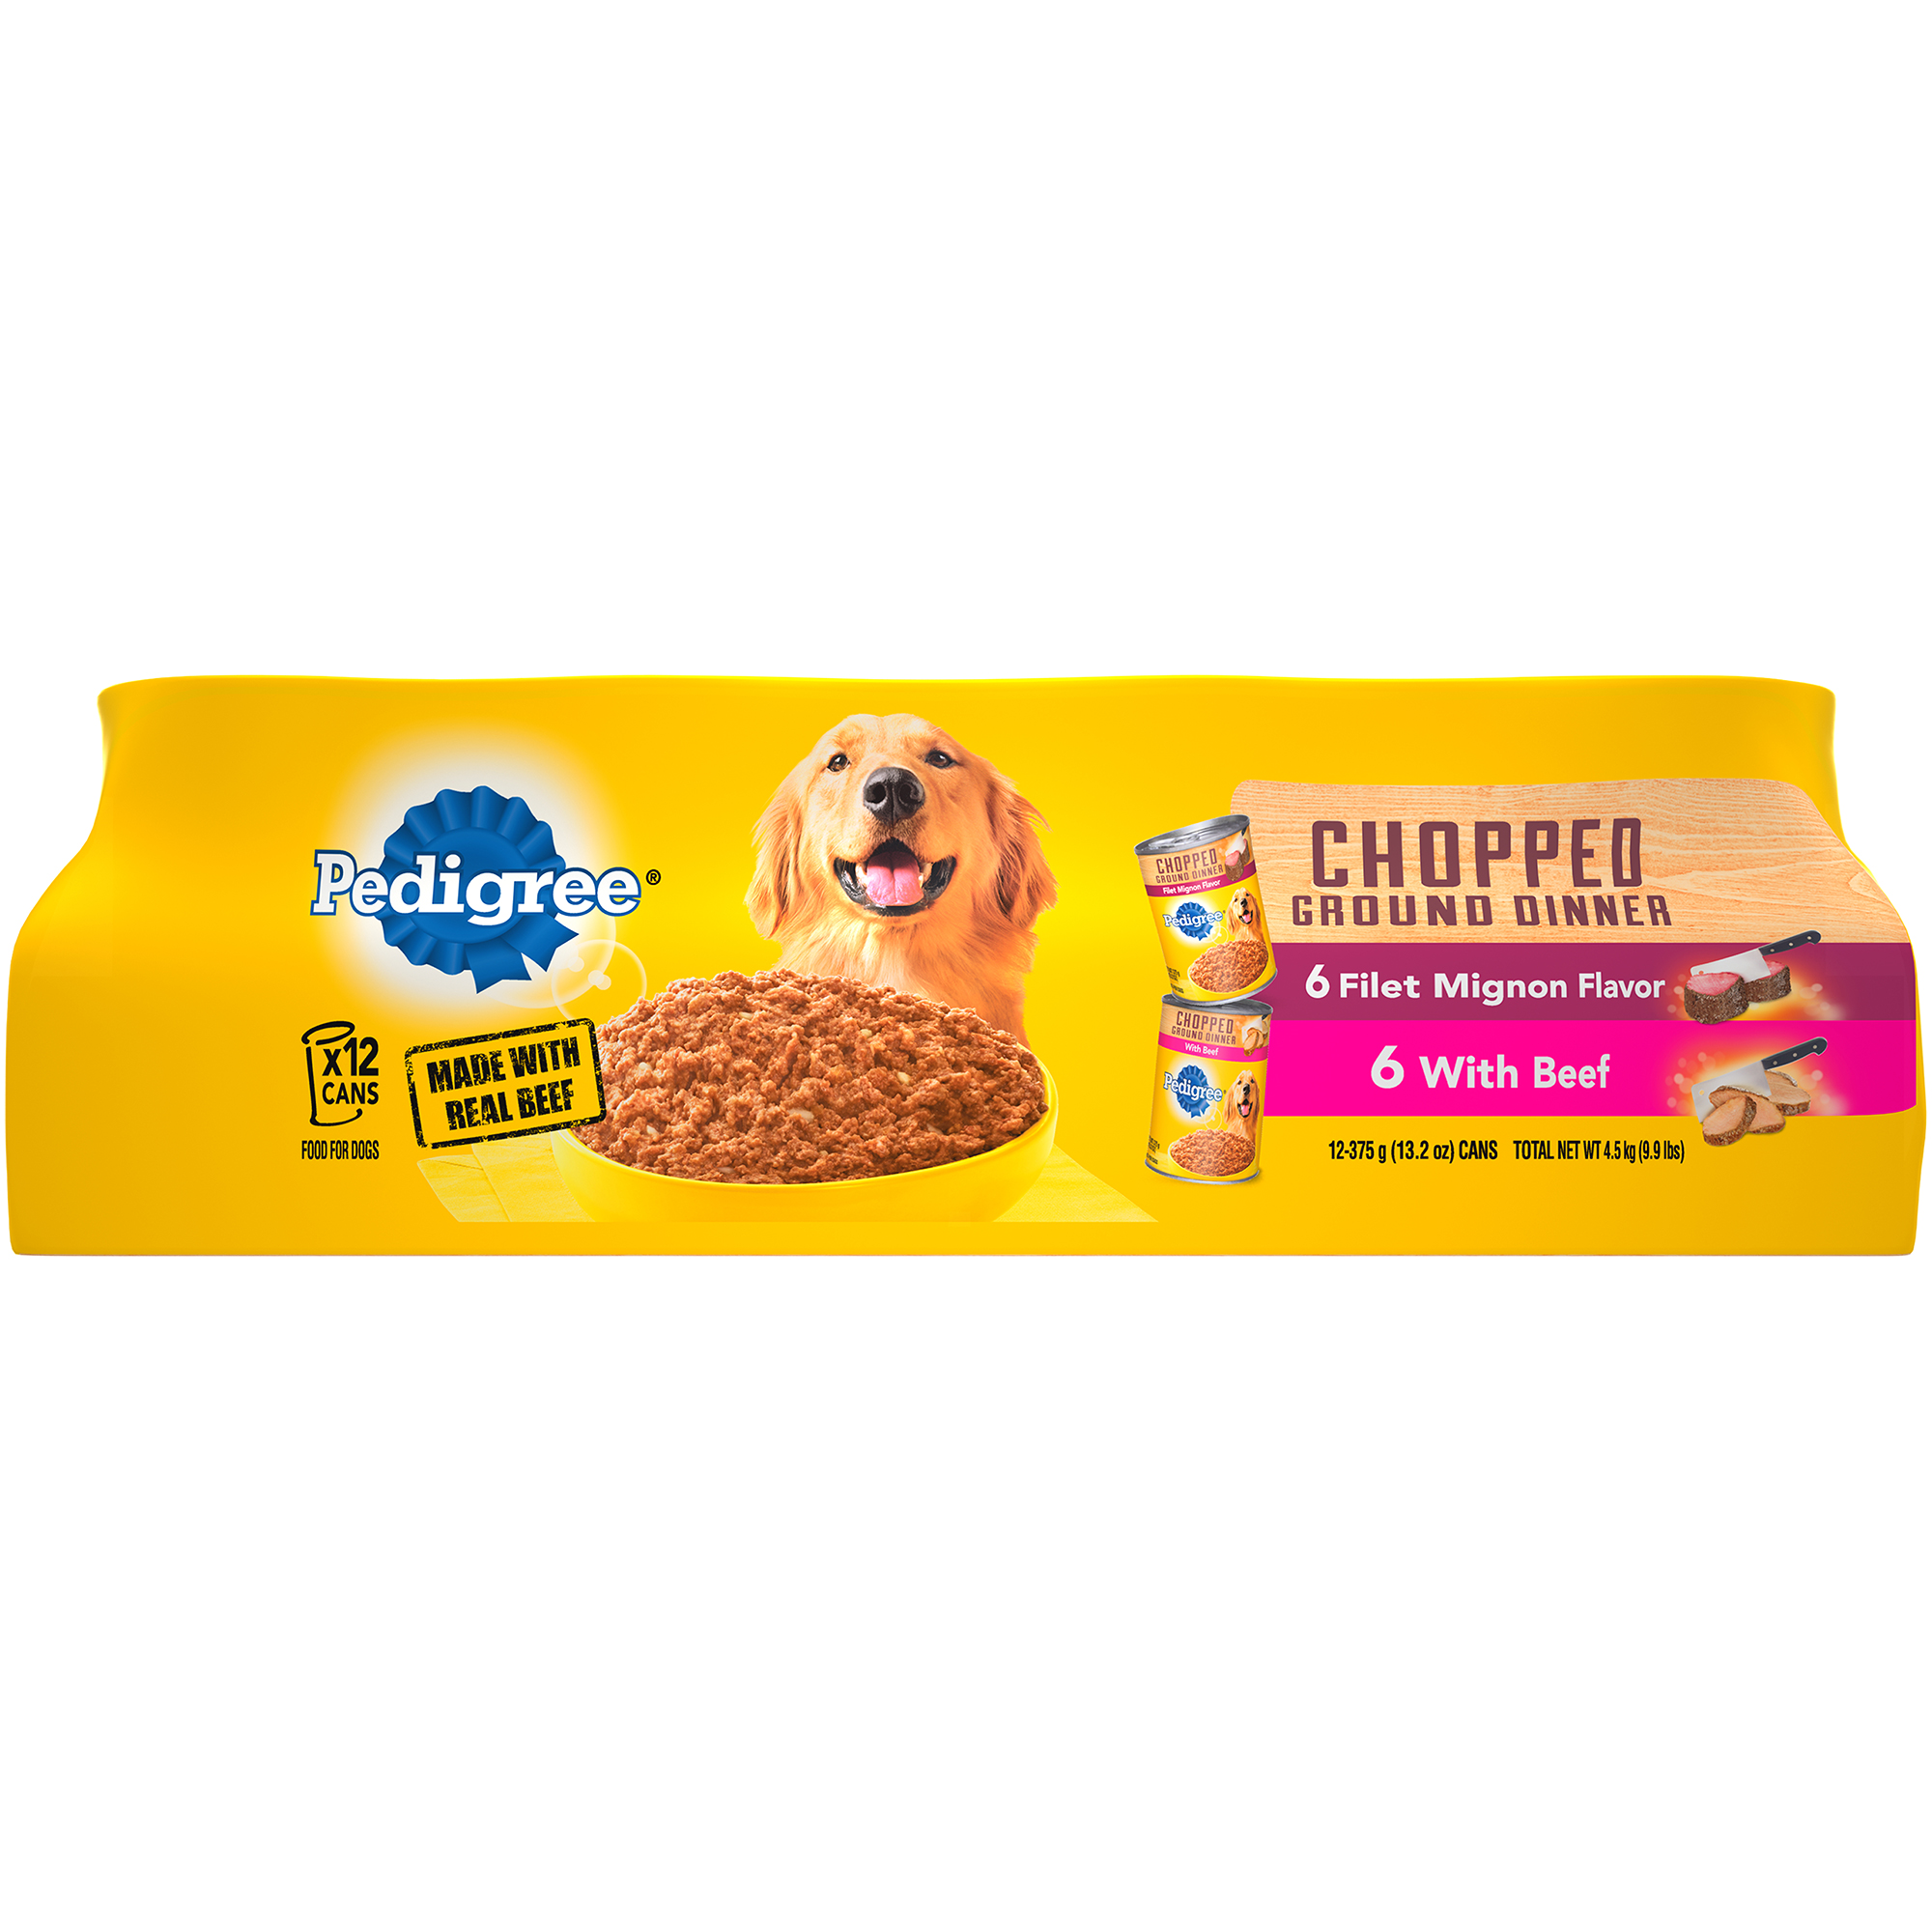 PEDIGREE Chopped Ground Dinner Multipack Filet Mignon & Beef Dog Food 13.2 Ounces (12 Count)